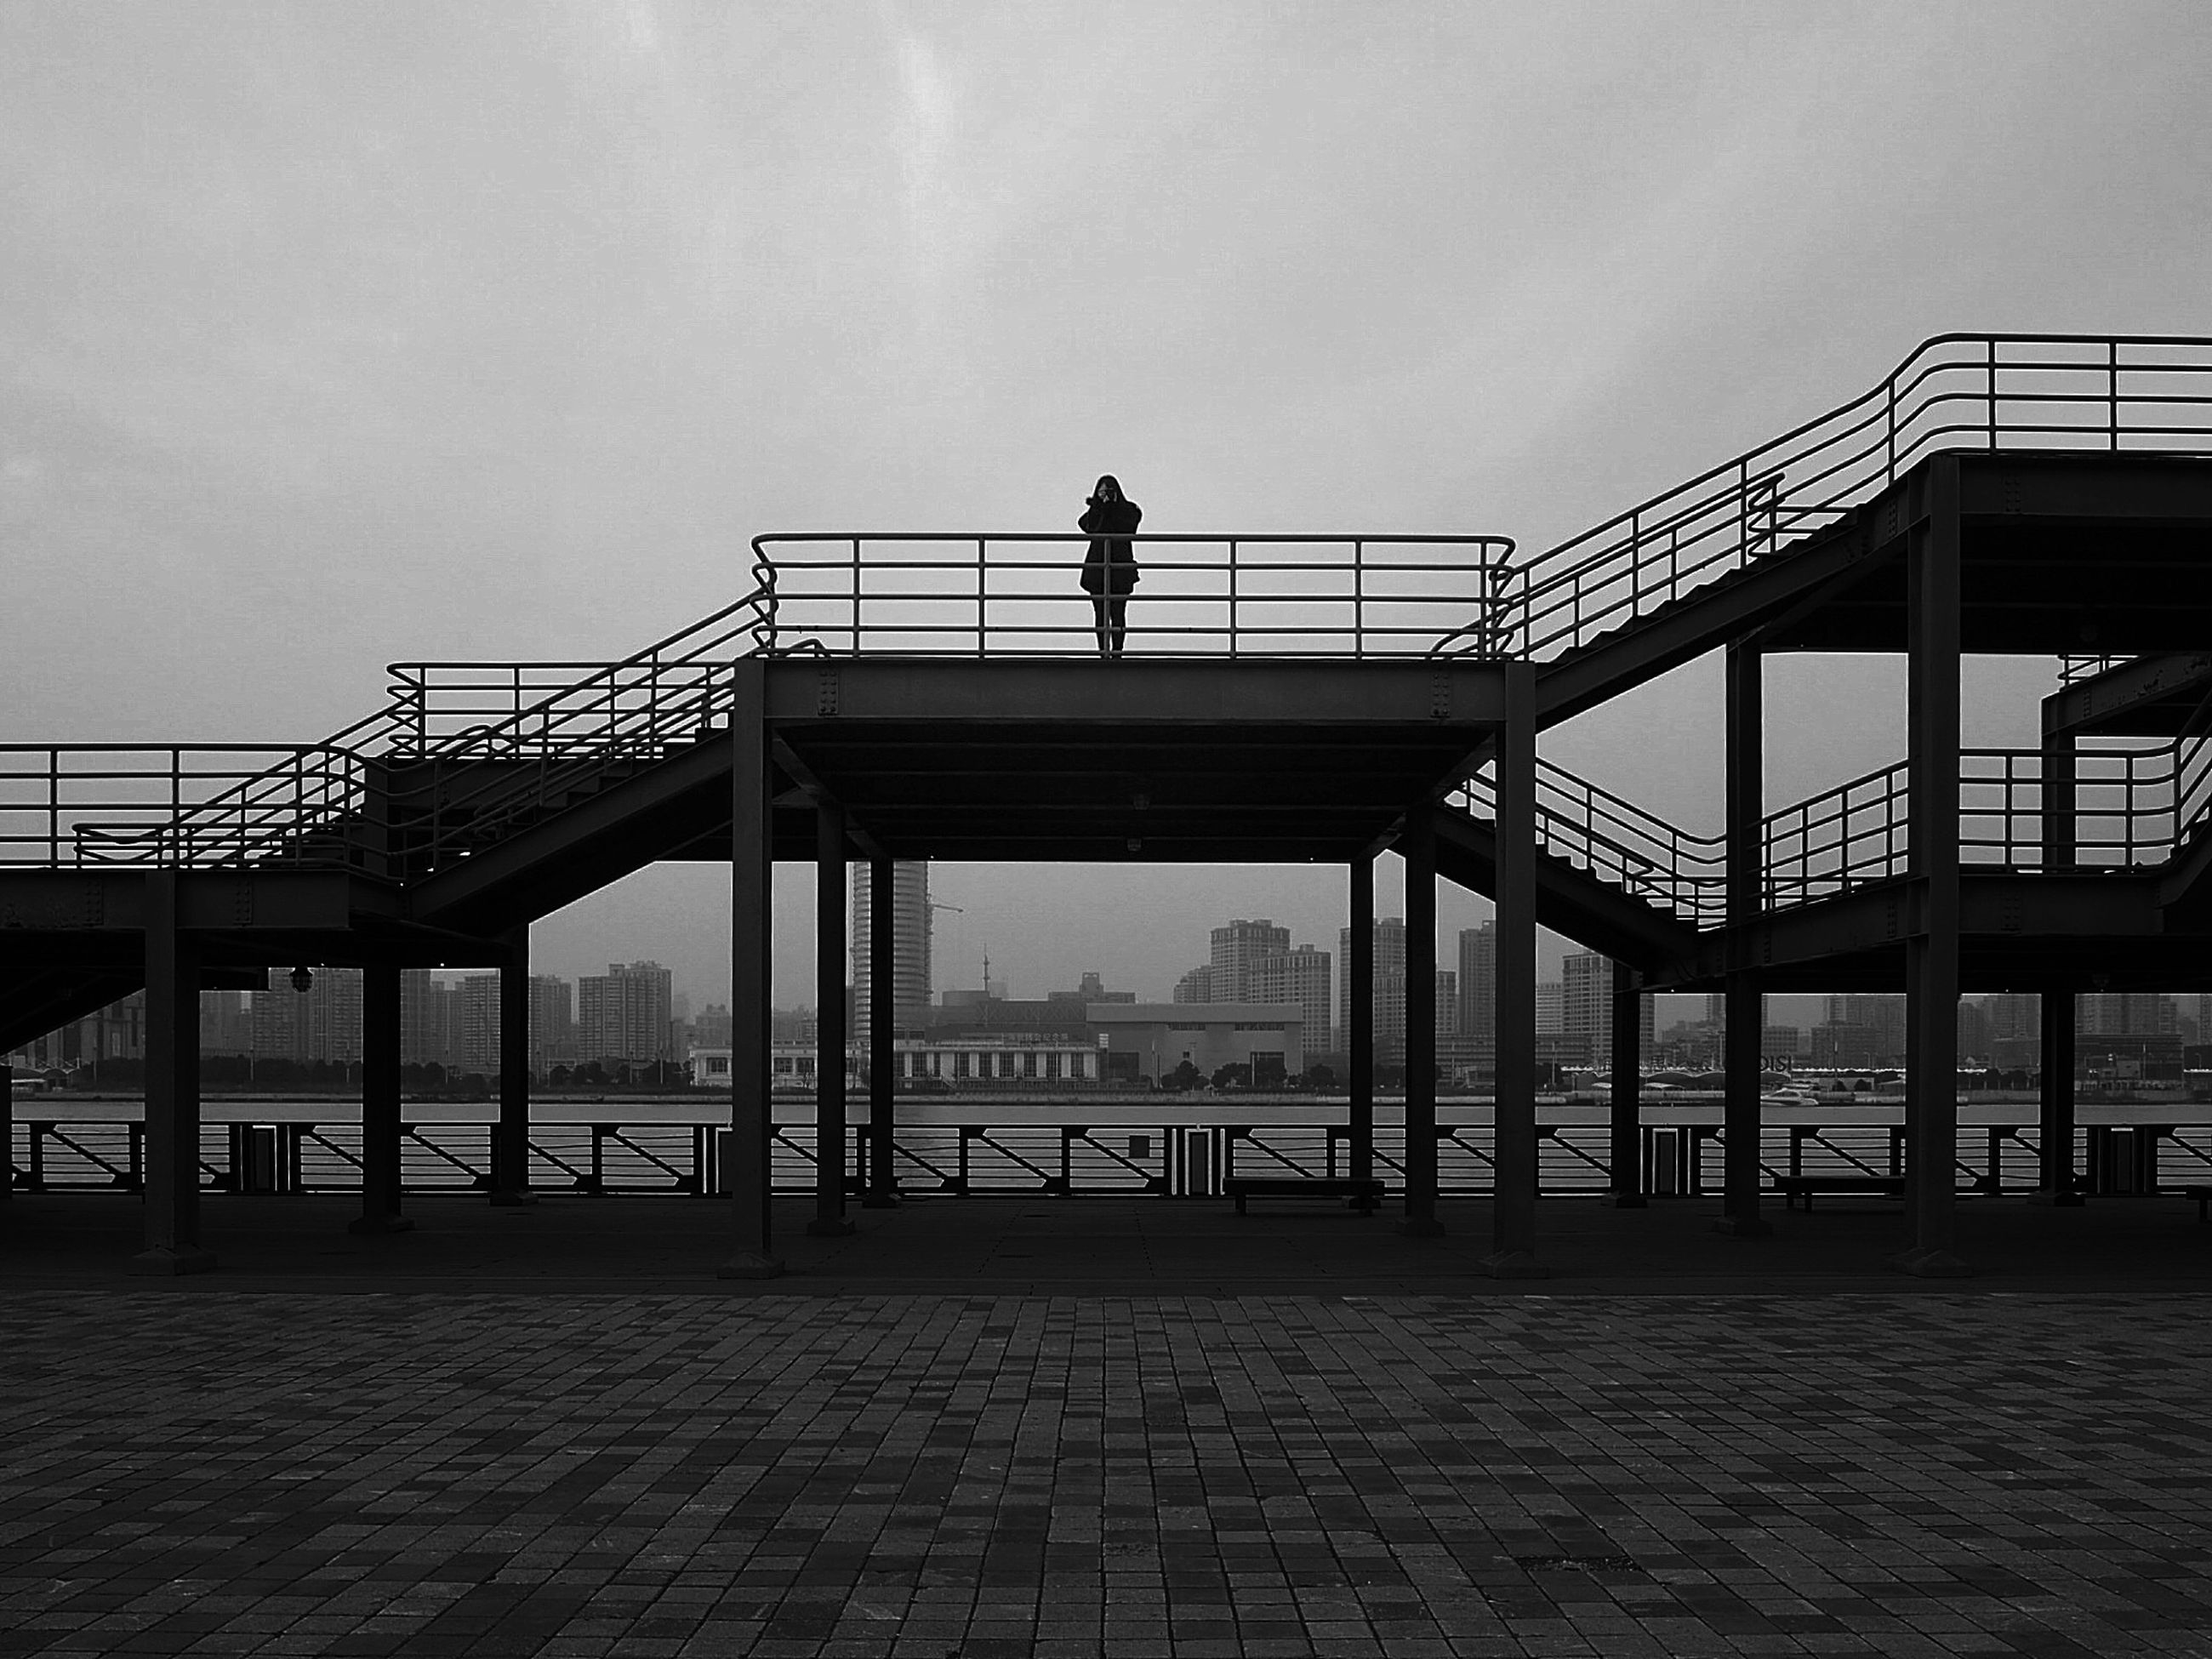 built structure, architecture, silhouette, men, sky, railing, standing, lifestyles, full length, walking, leisure activity, rear view, building exterior, sunset, person, bridge - man made structure, unrecognizable person, outdoors